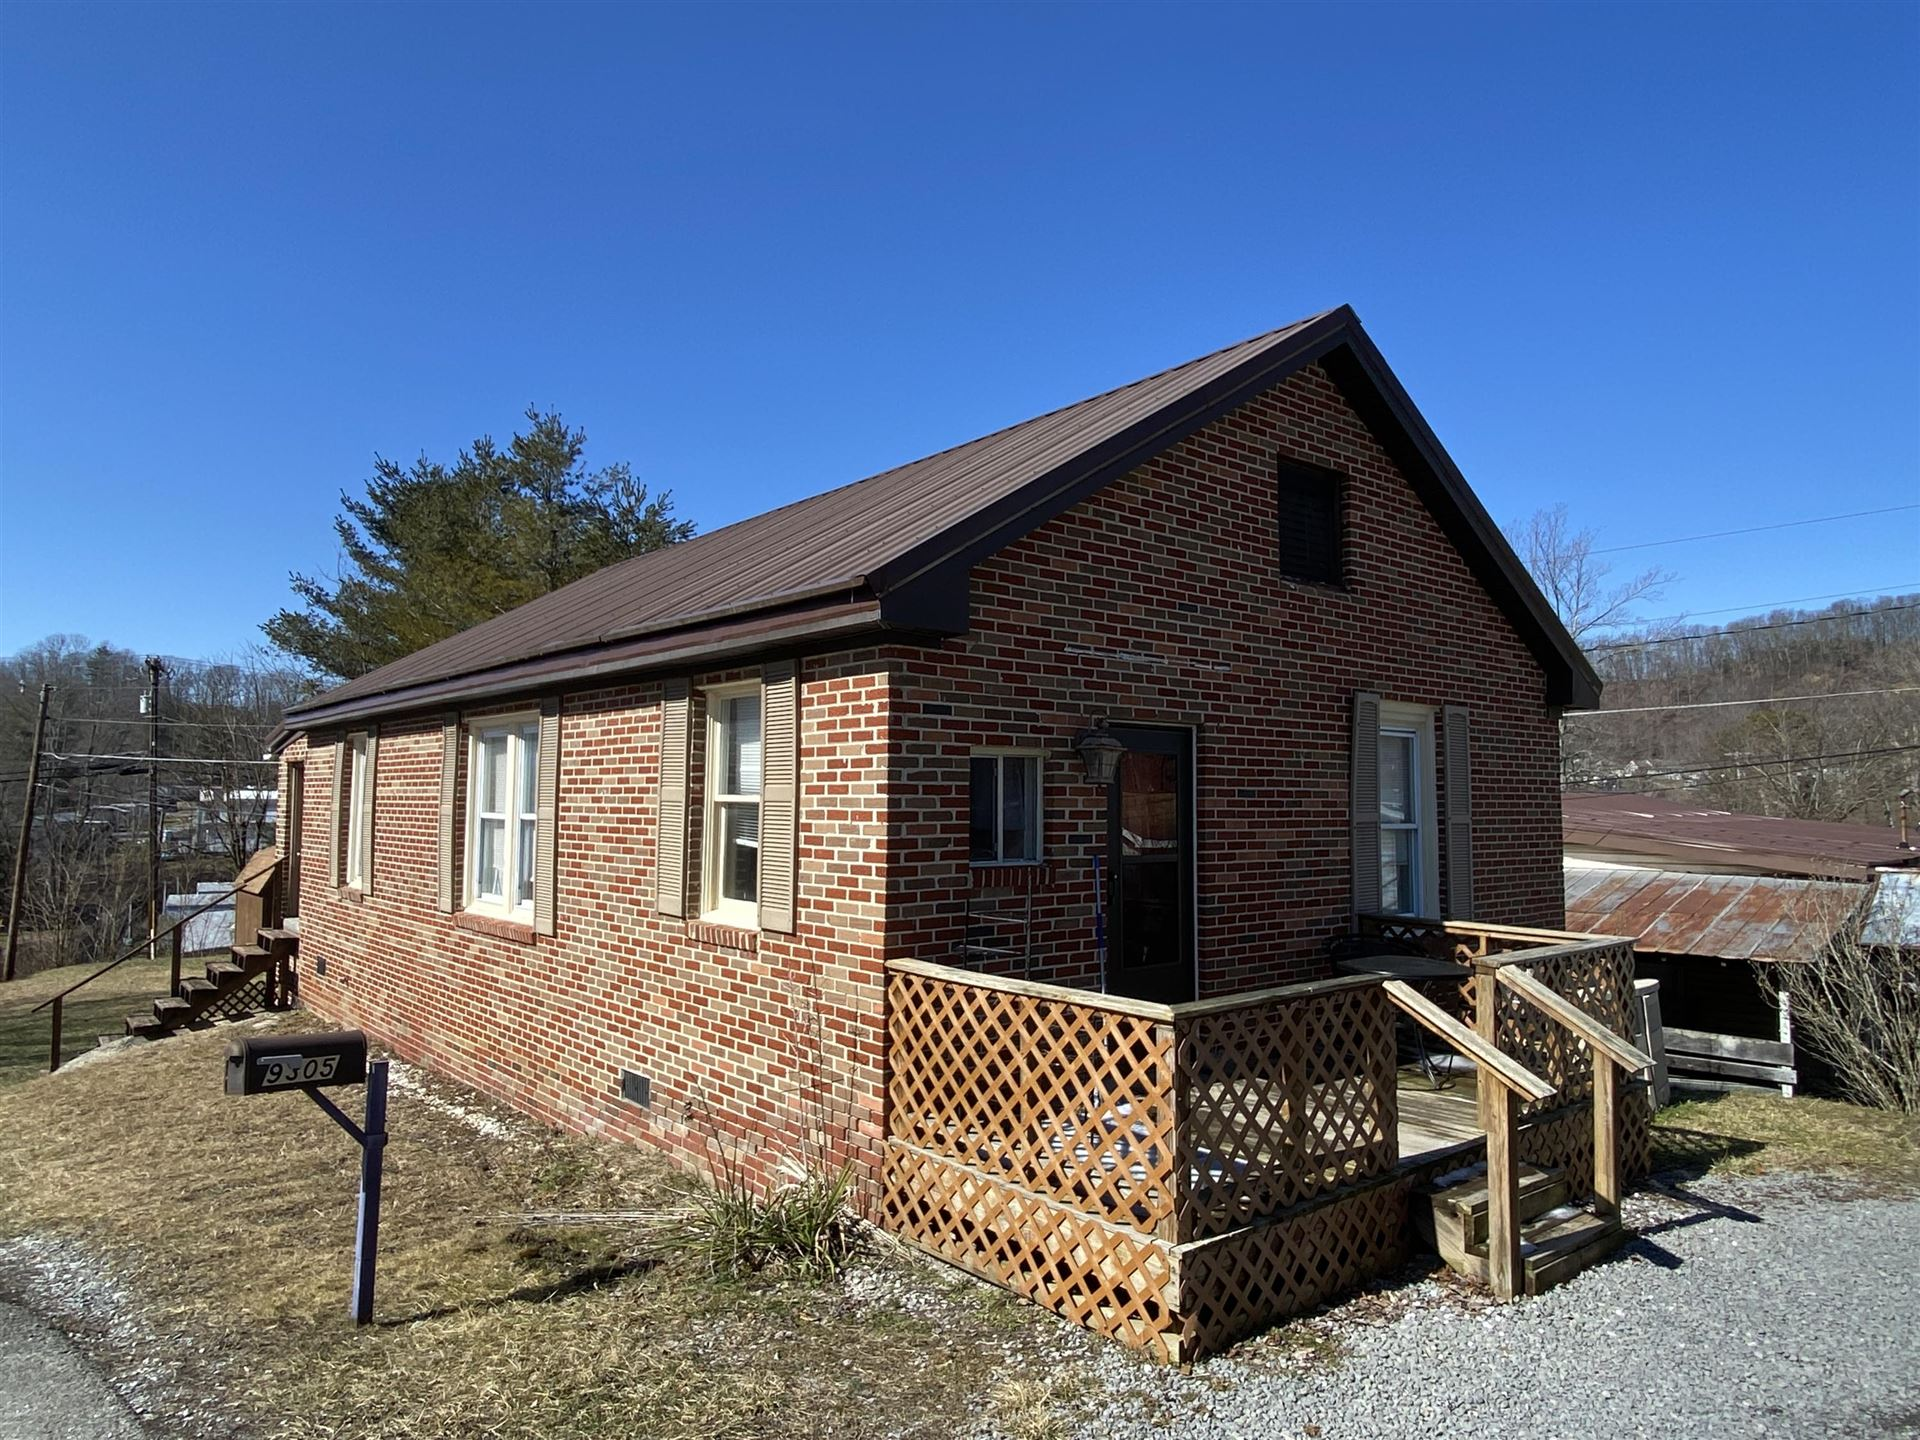 Photo of 9305 Adwell Road, Wise, VA 24293 (MLS # 9917999)